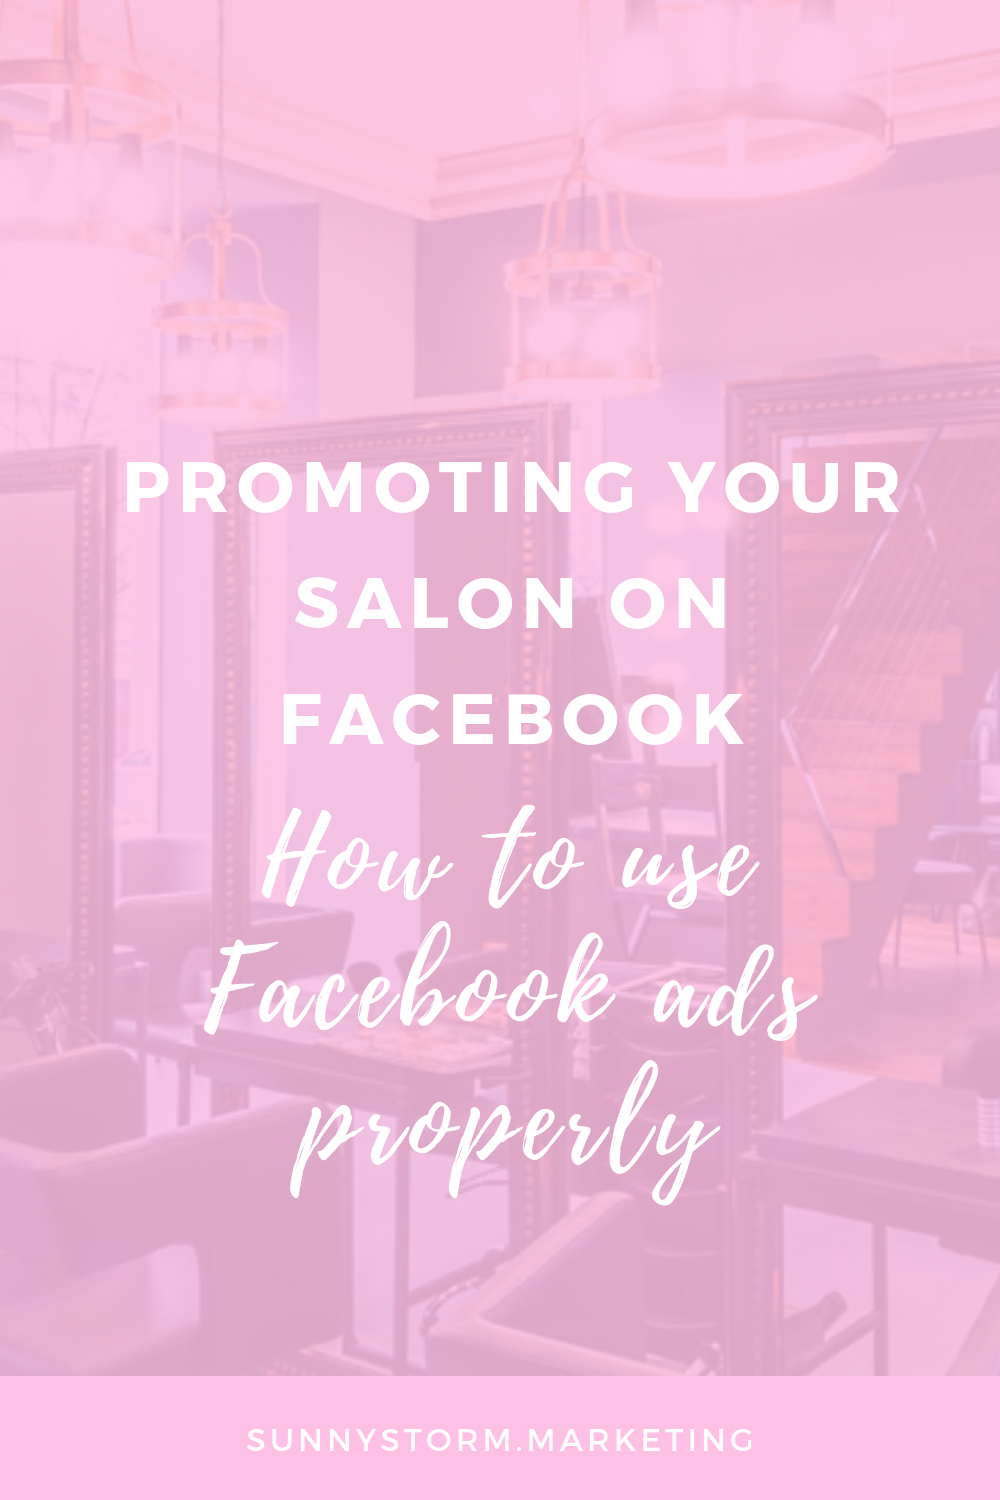 Salon promotion ideas: Facebook ads for bringing in more salon